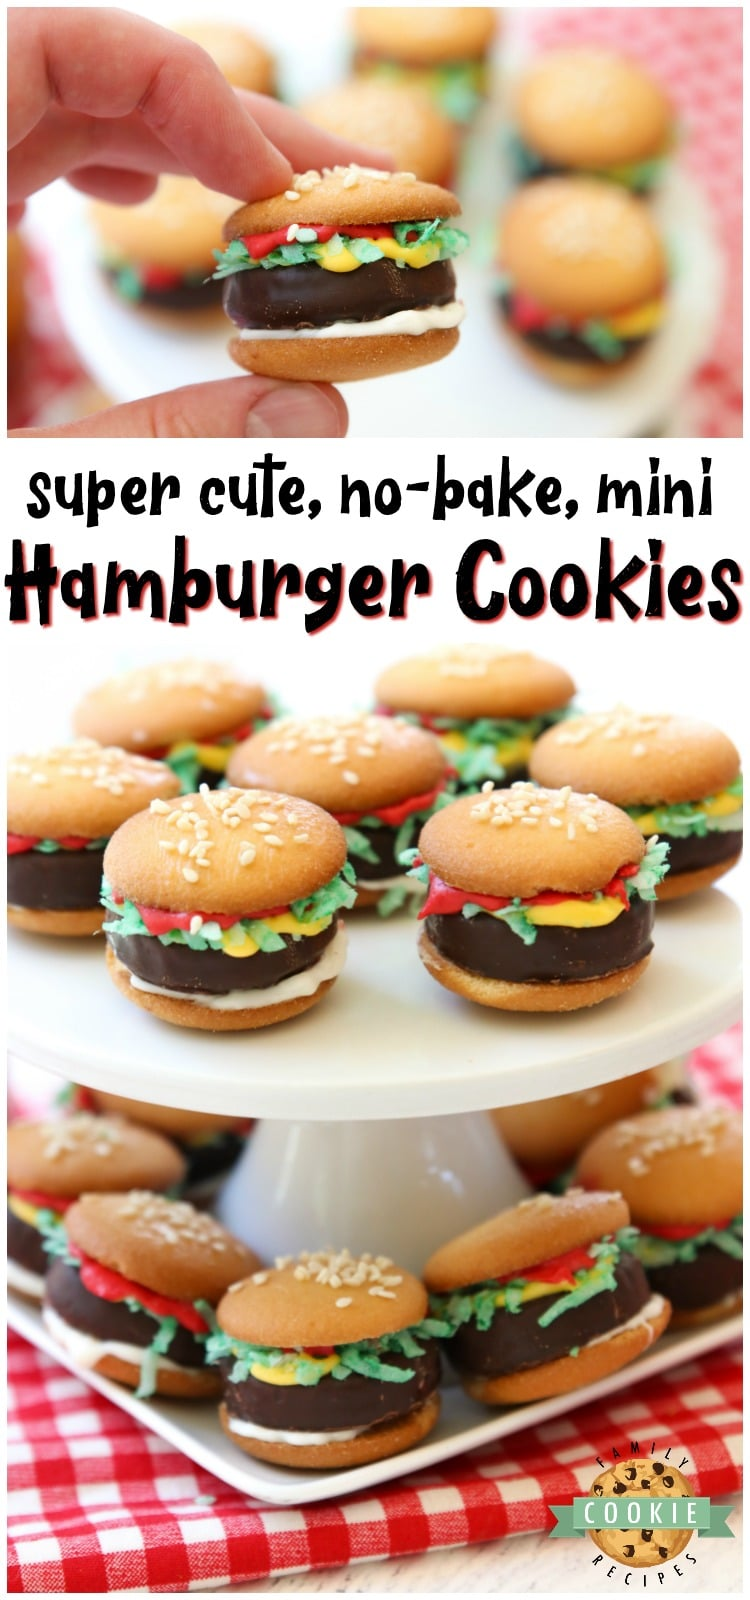 Mini Hamburger Cookies made from Nilla Wafers, York Peppermint Patties and melted candy! Super cute no-bake hamburger cookies that kids go crazy over! via @buttergirls